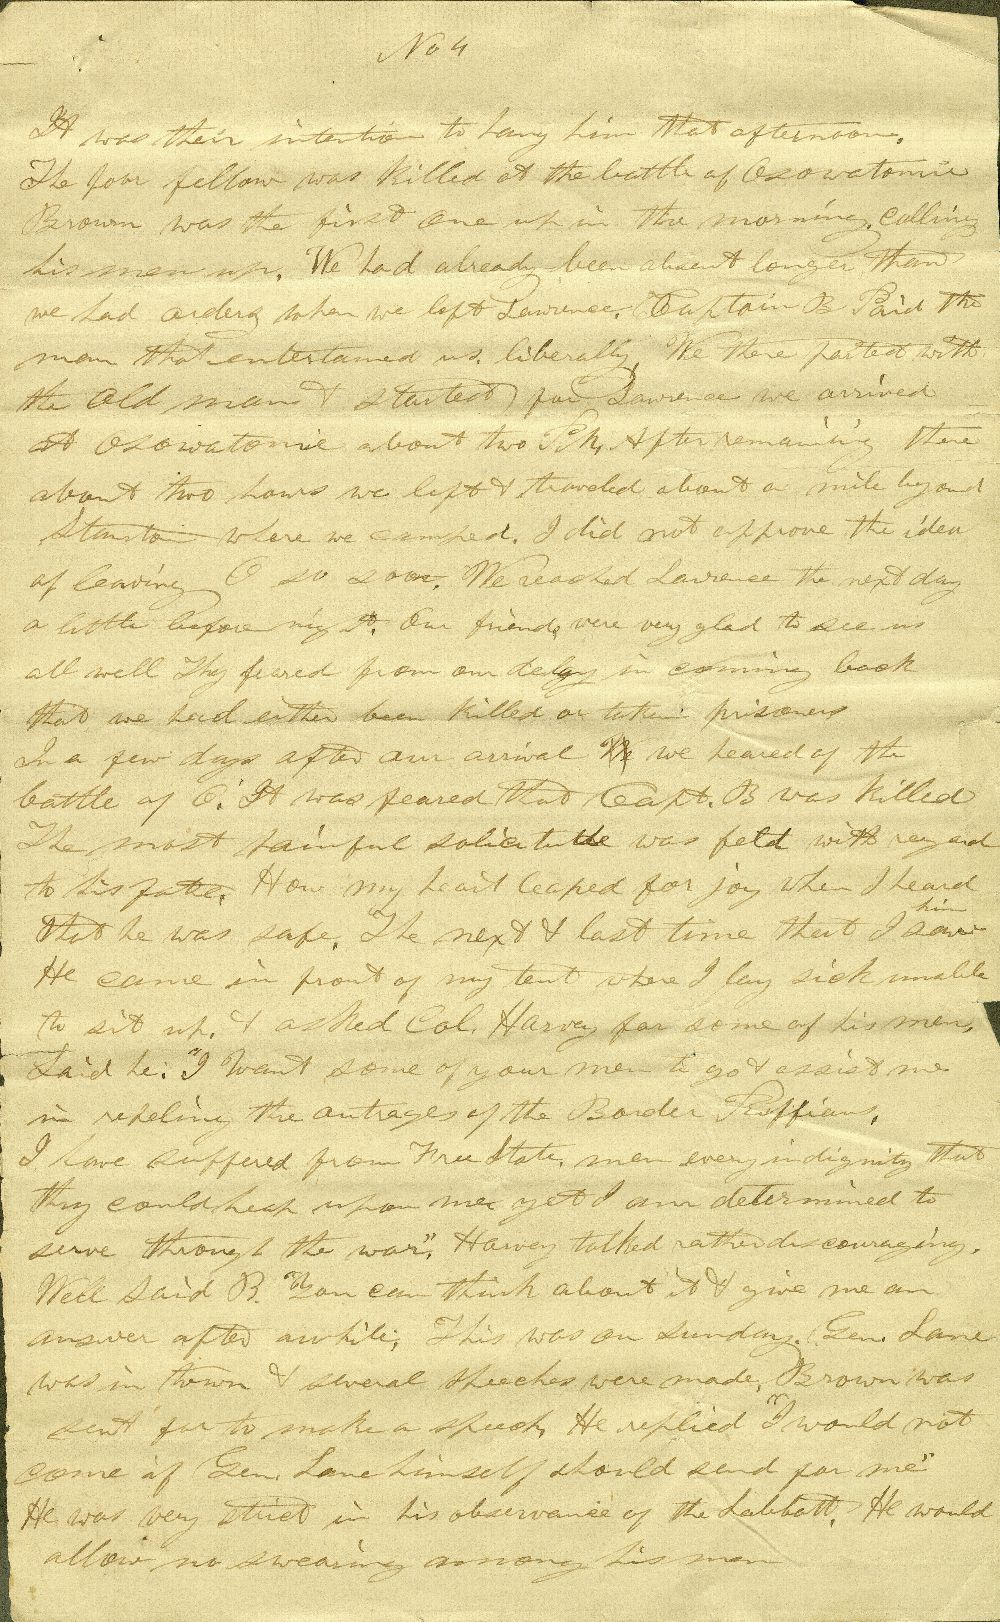 C. G. Allen's response to Redpath and Hinton's call for information about John Brown - 13